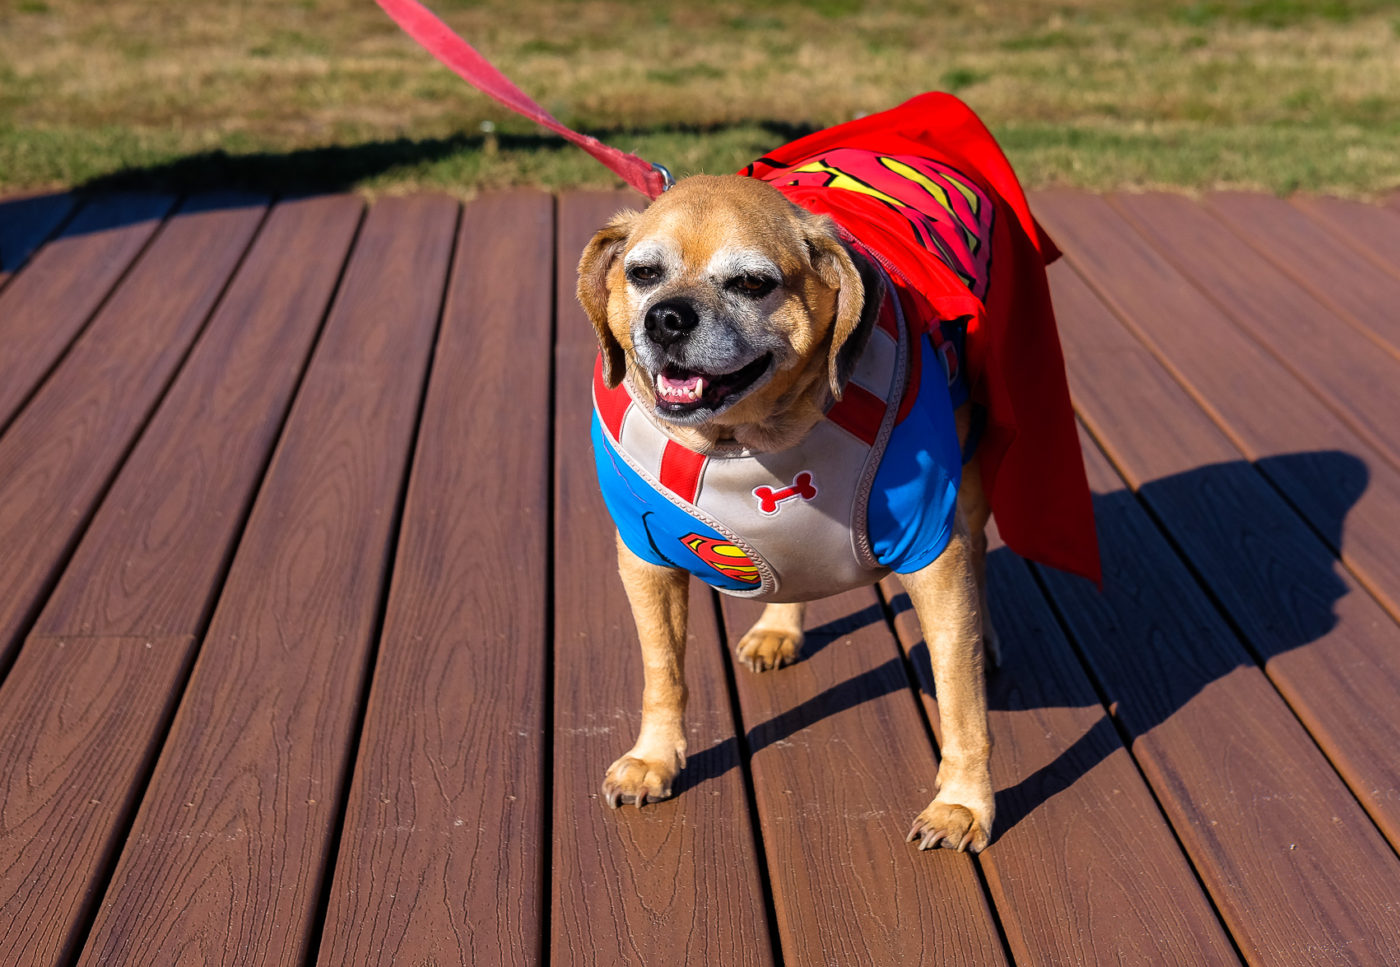 Portraits of the Jersey Shore Asbury Park Puggle Survived Attack by Pitbull just before Superstorm Sandy Superdog Costume Halloween